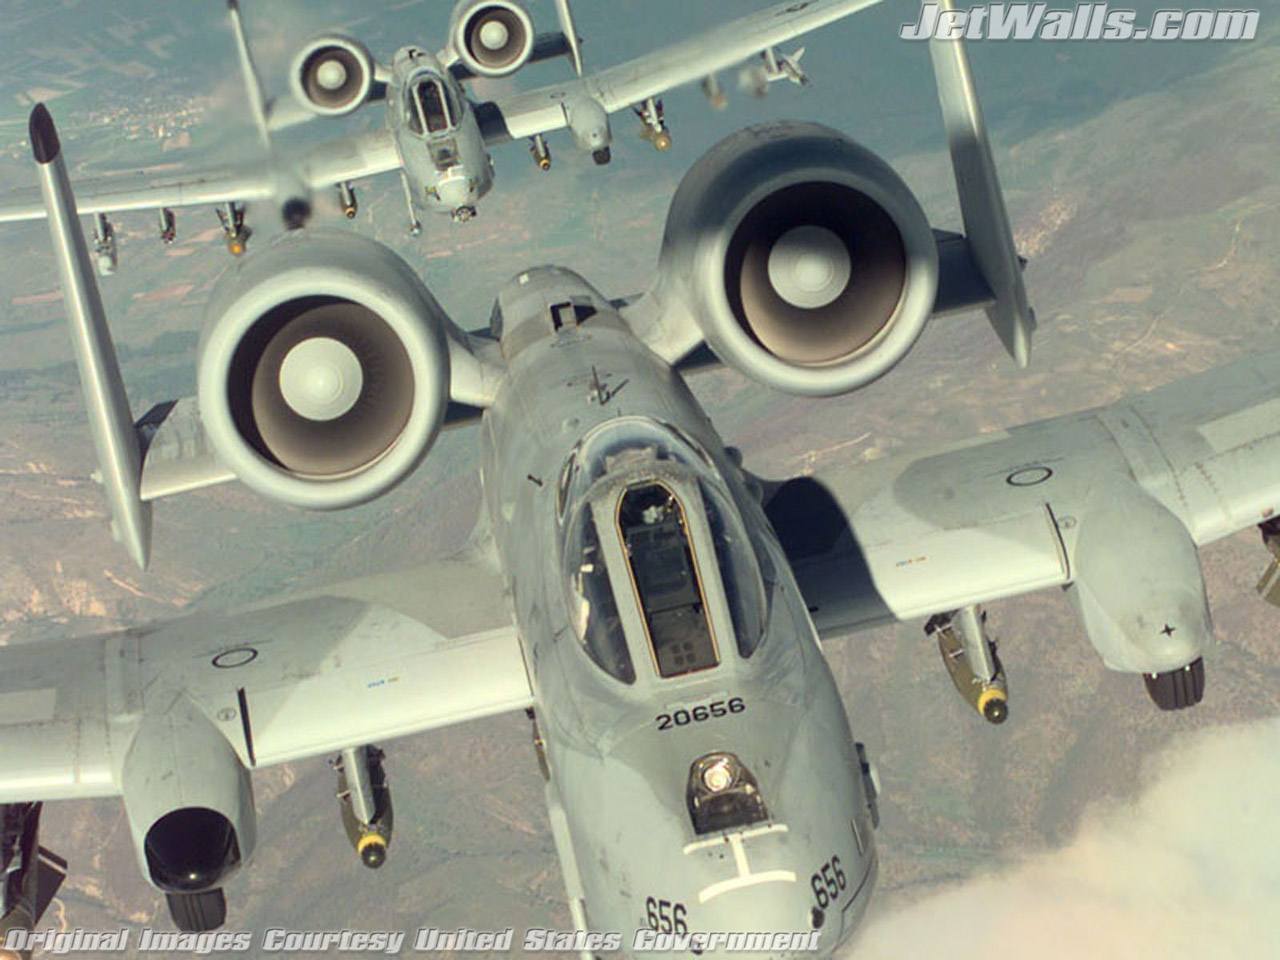 """Two A-10 Thunderbolt IIs"" - Wallpaper No. 11 of 101. Right click for saving options."